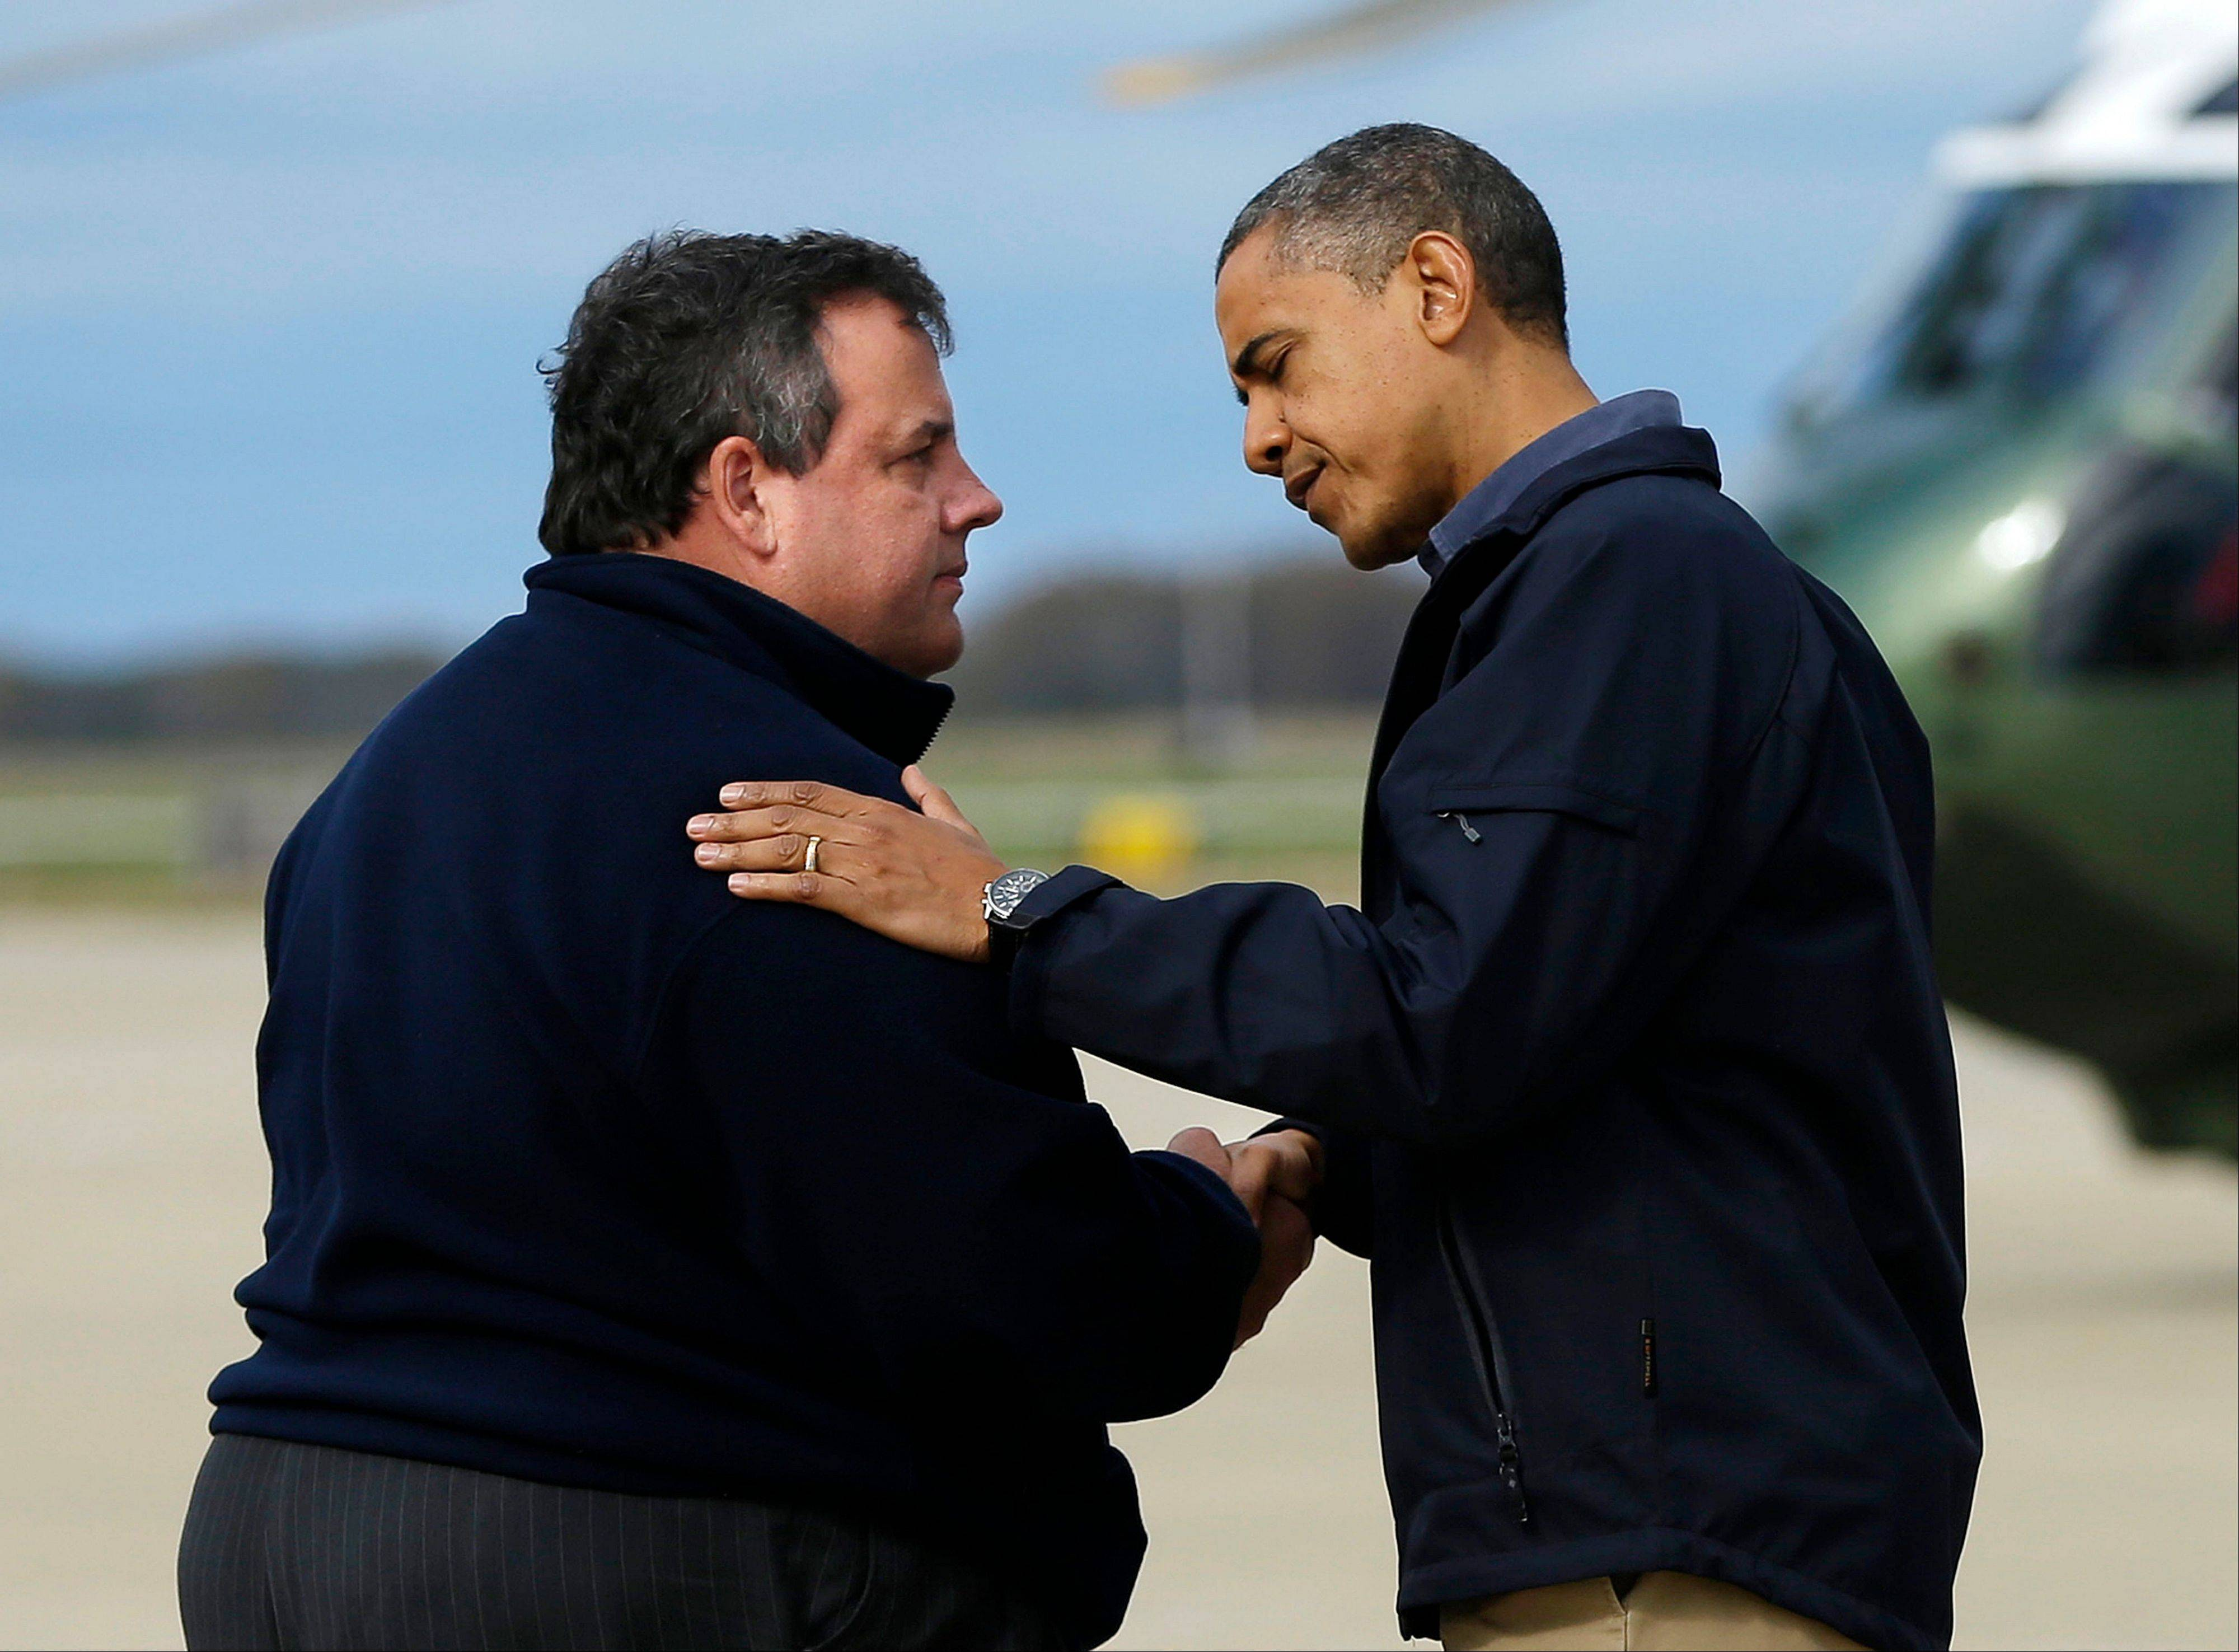 President Barack Obama is greeted by New Jersey Gov. Chris Christie upon his arrival at Atlantic City International Airport Wednesday. Obama traveled to region to take an aerial tour of the Atlantic Coast in New Jersey in areas damaged by superstorm Sandy.